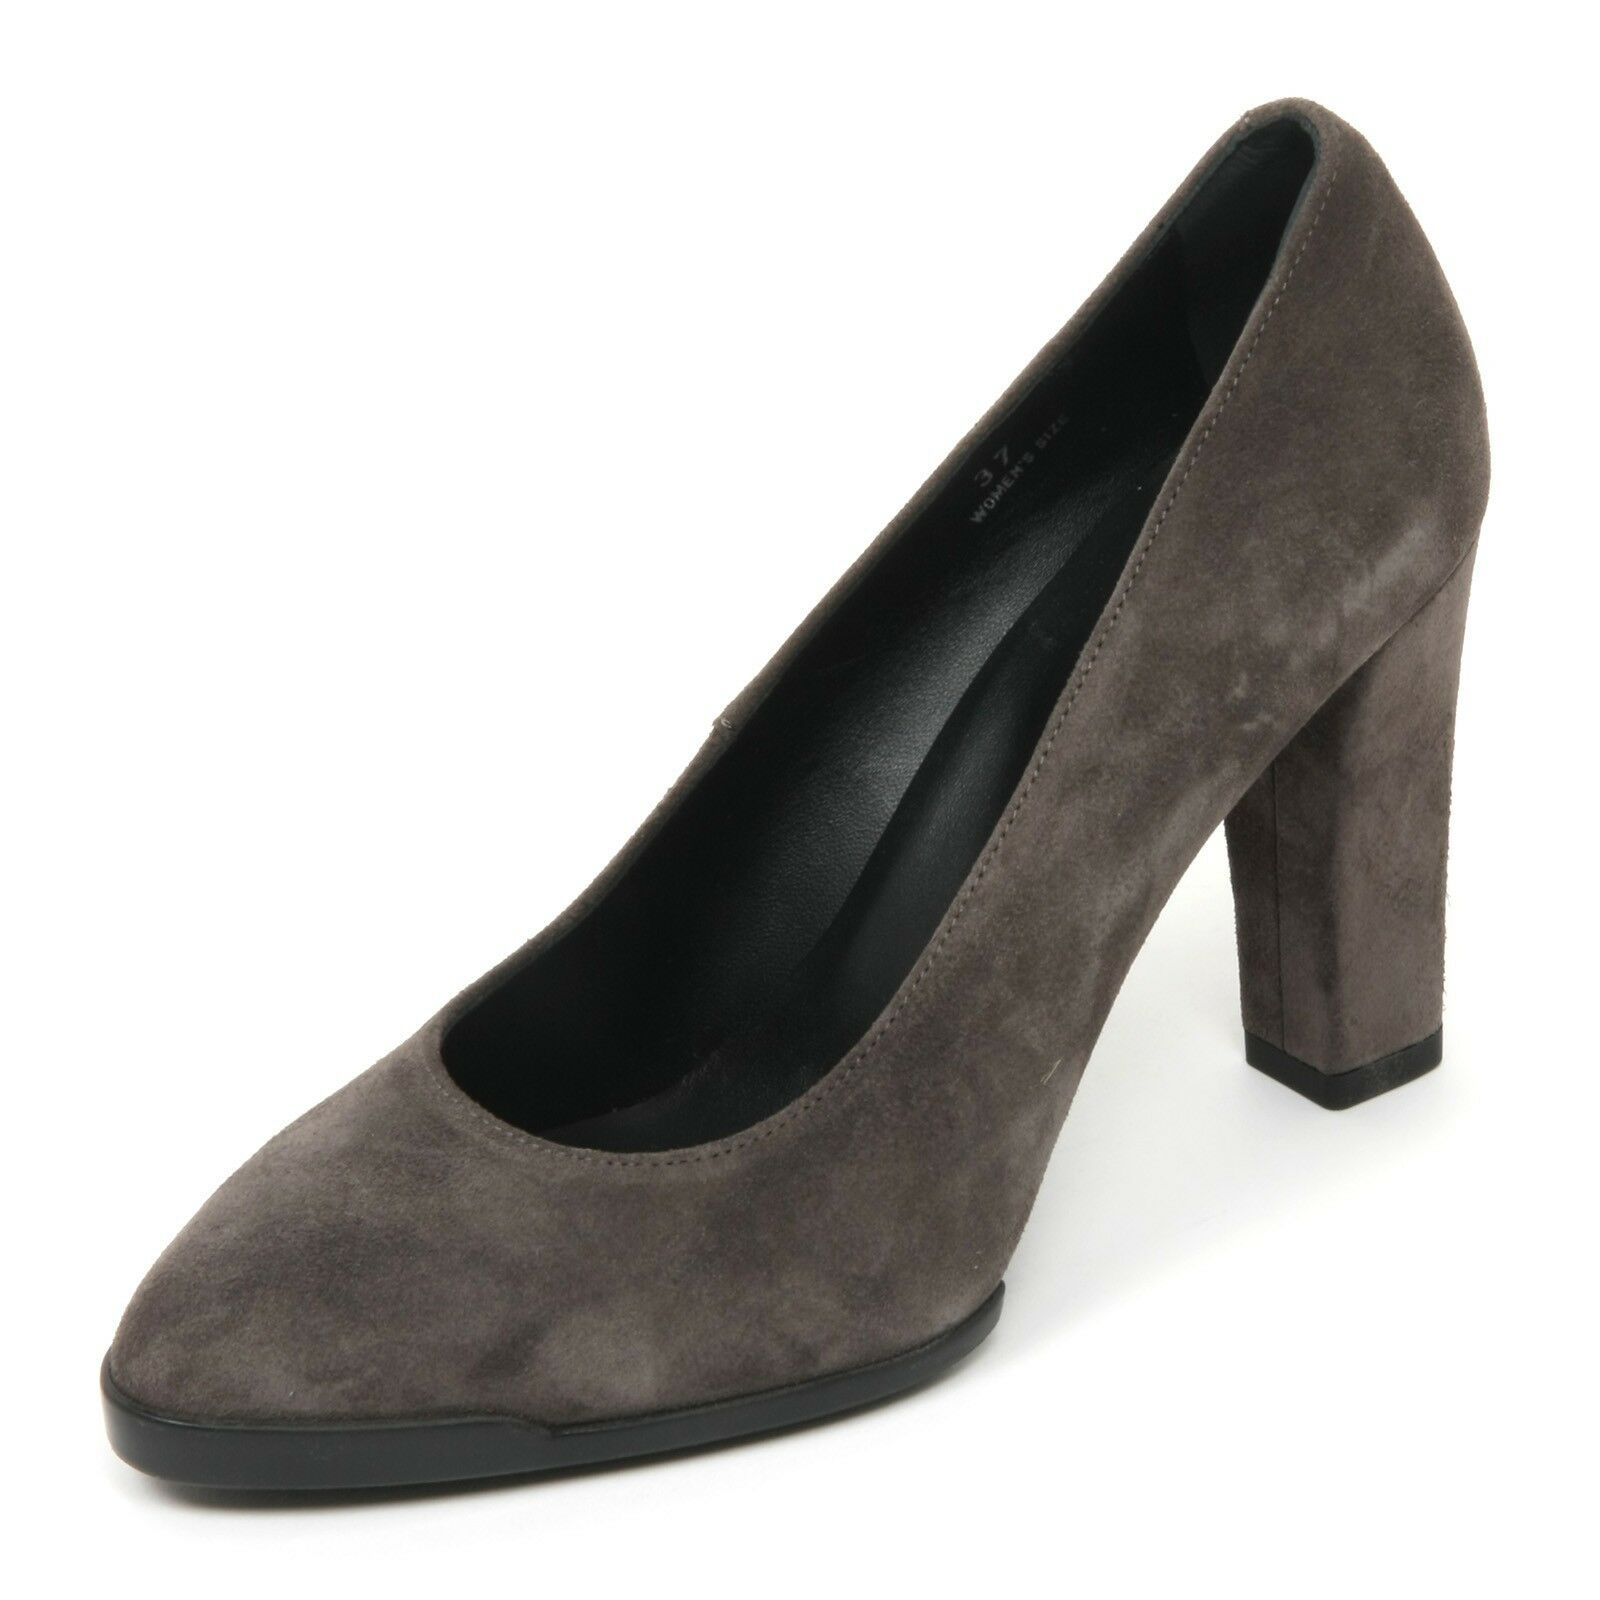 B9612 Pumps women TOD's Rubber t95 grey shoe shoe woman